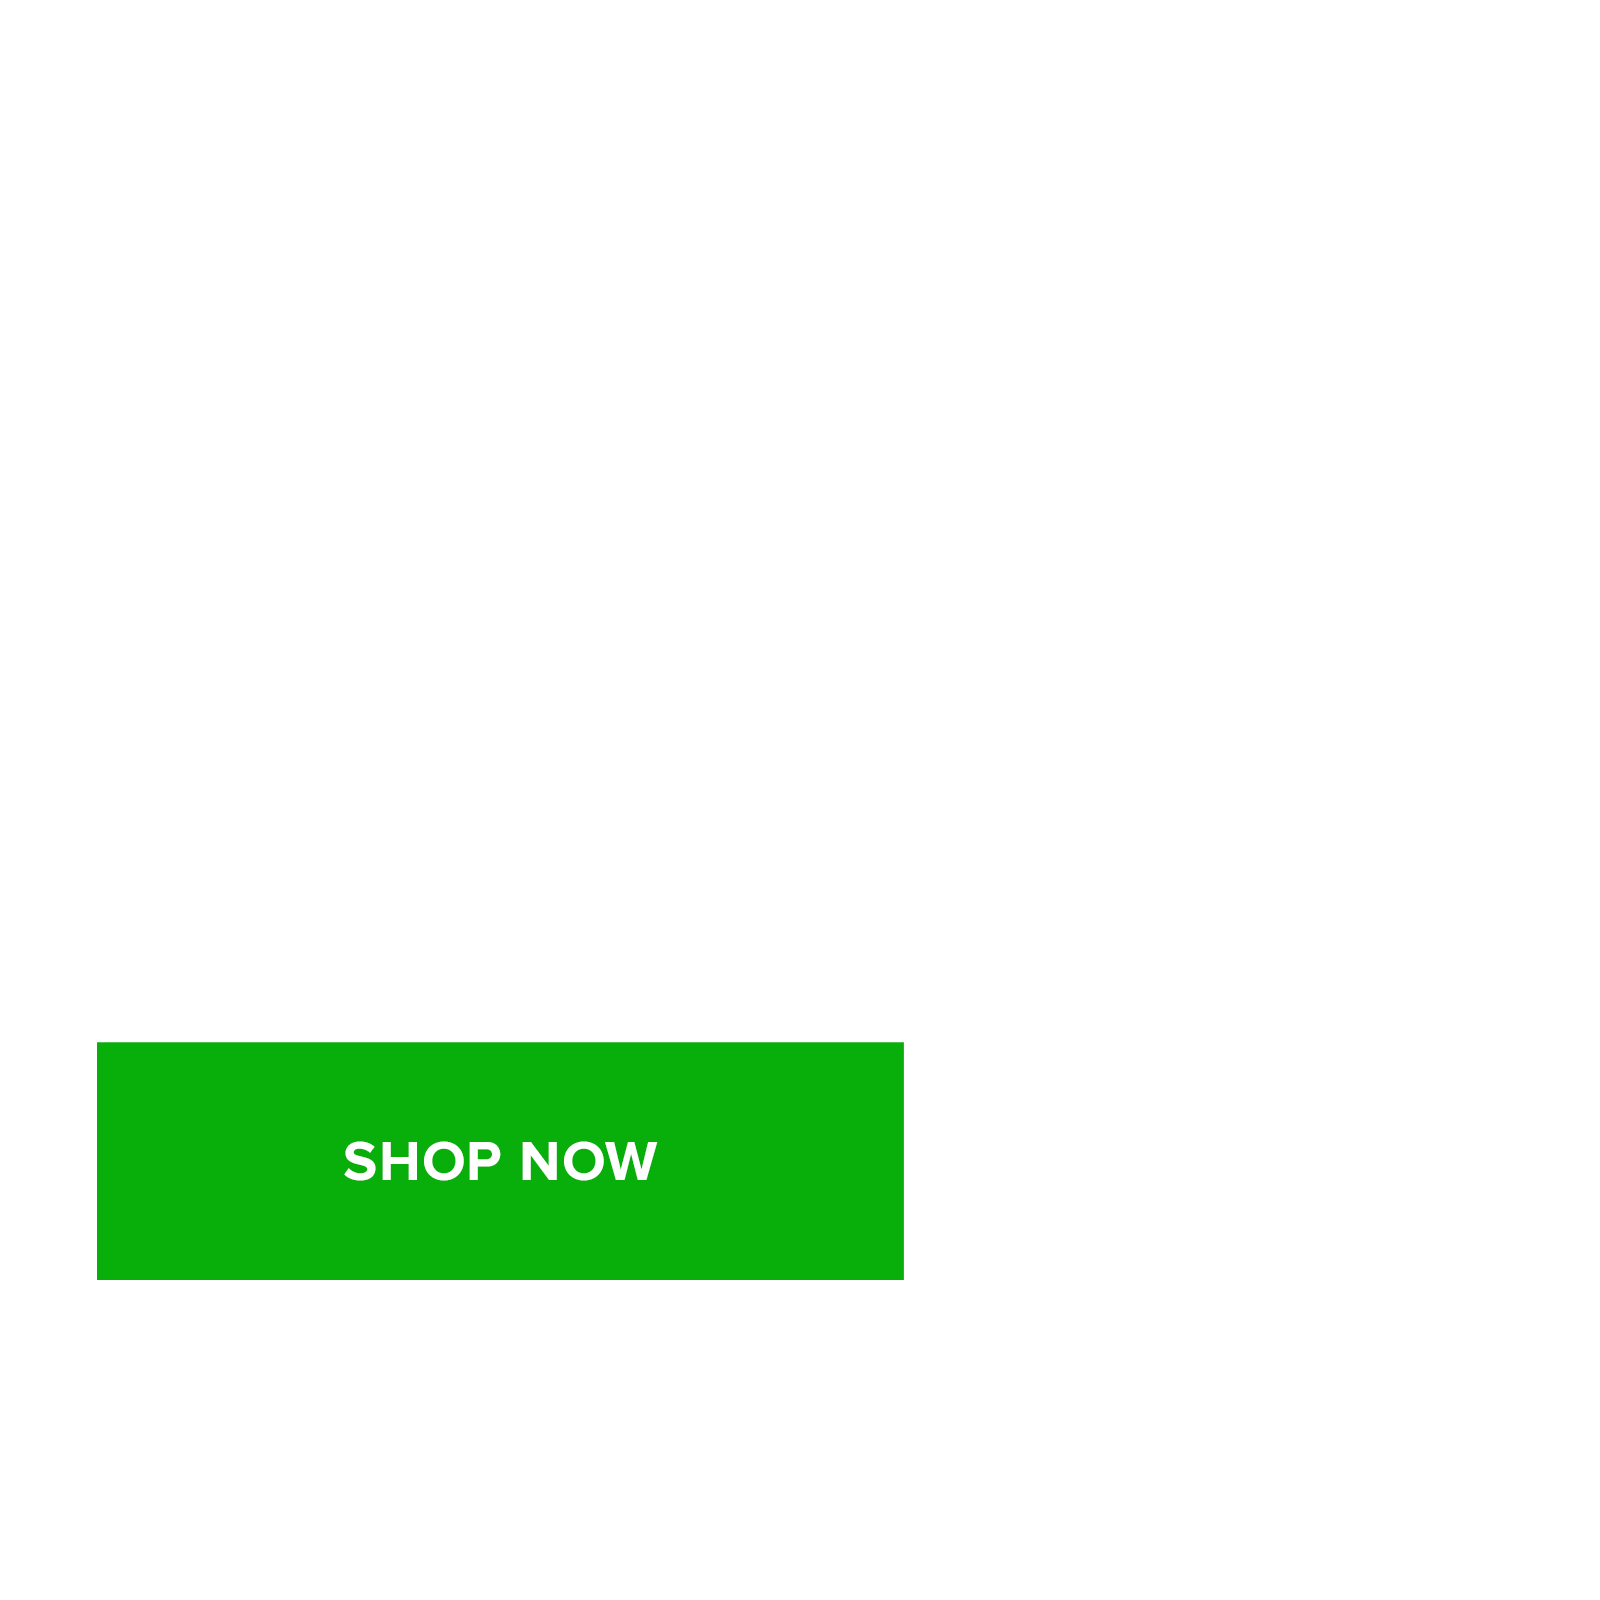 Today only: 50% off hydration with code DRINKUP